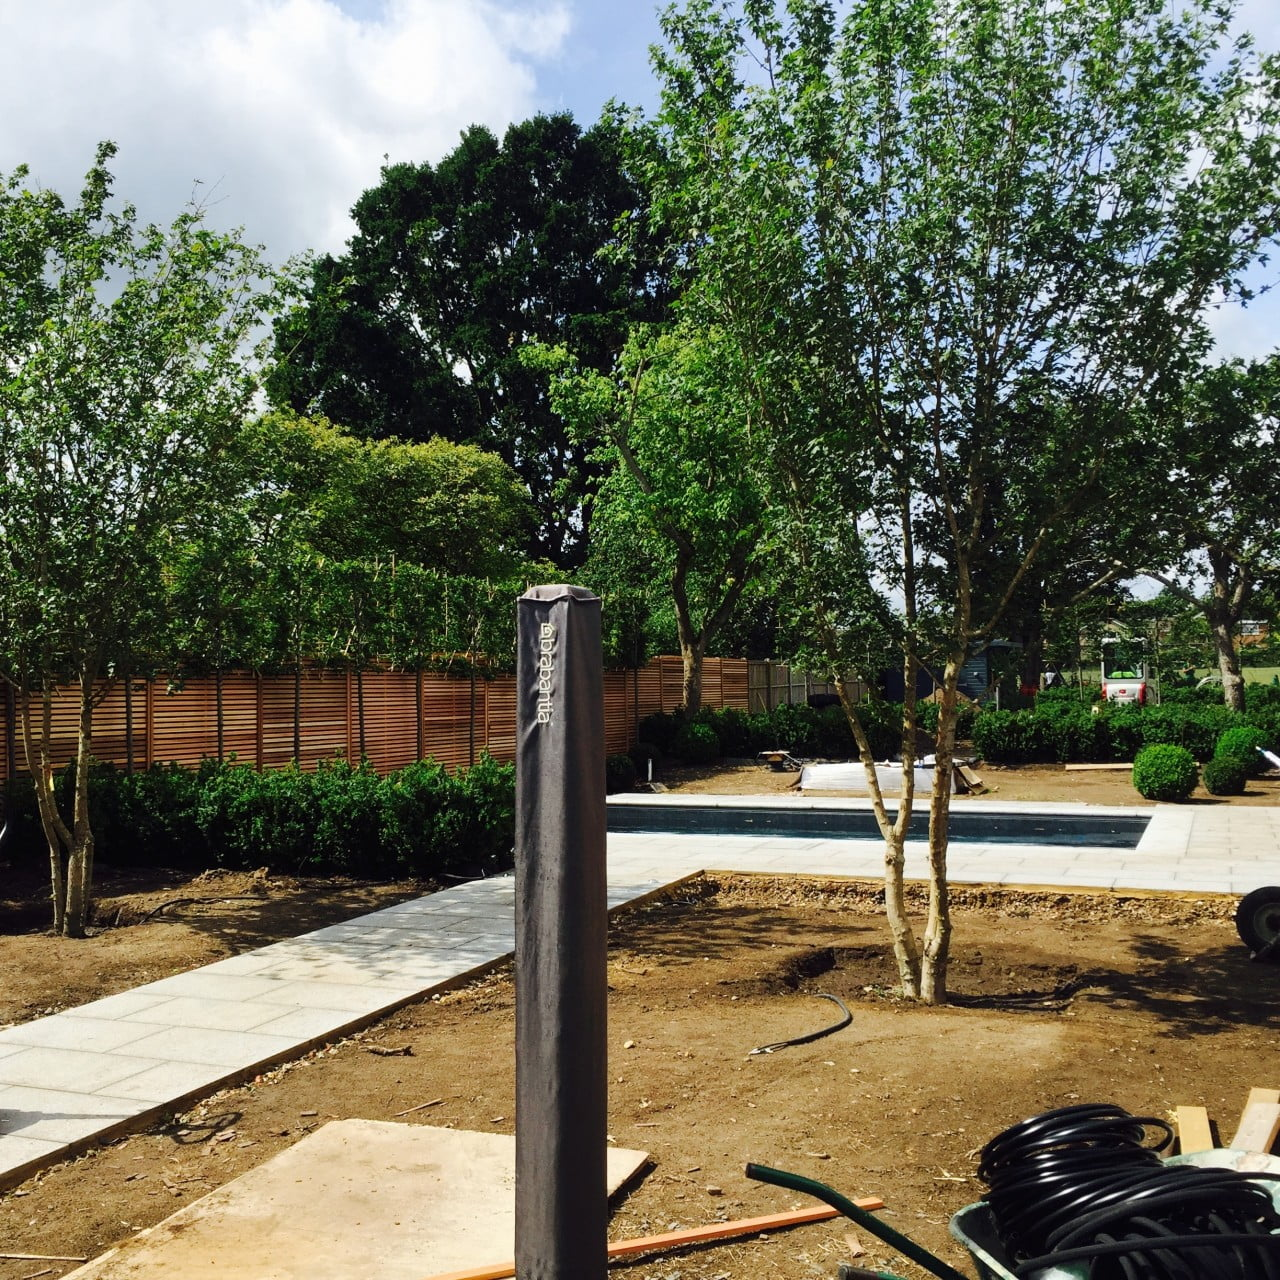 Work in progress in this modern garden design I created in Wokingham. These 2 multistemmed trees give a sense of height & maturity to what was once a blank canvas